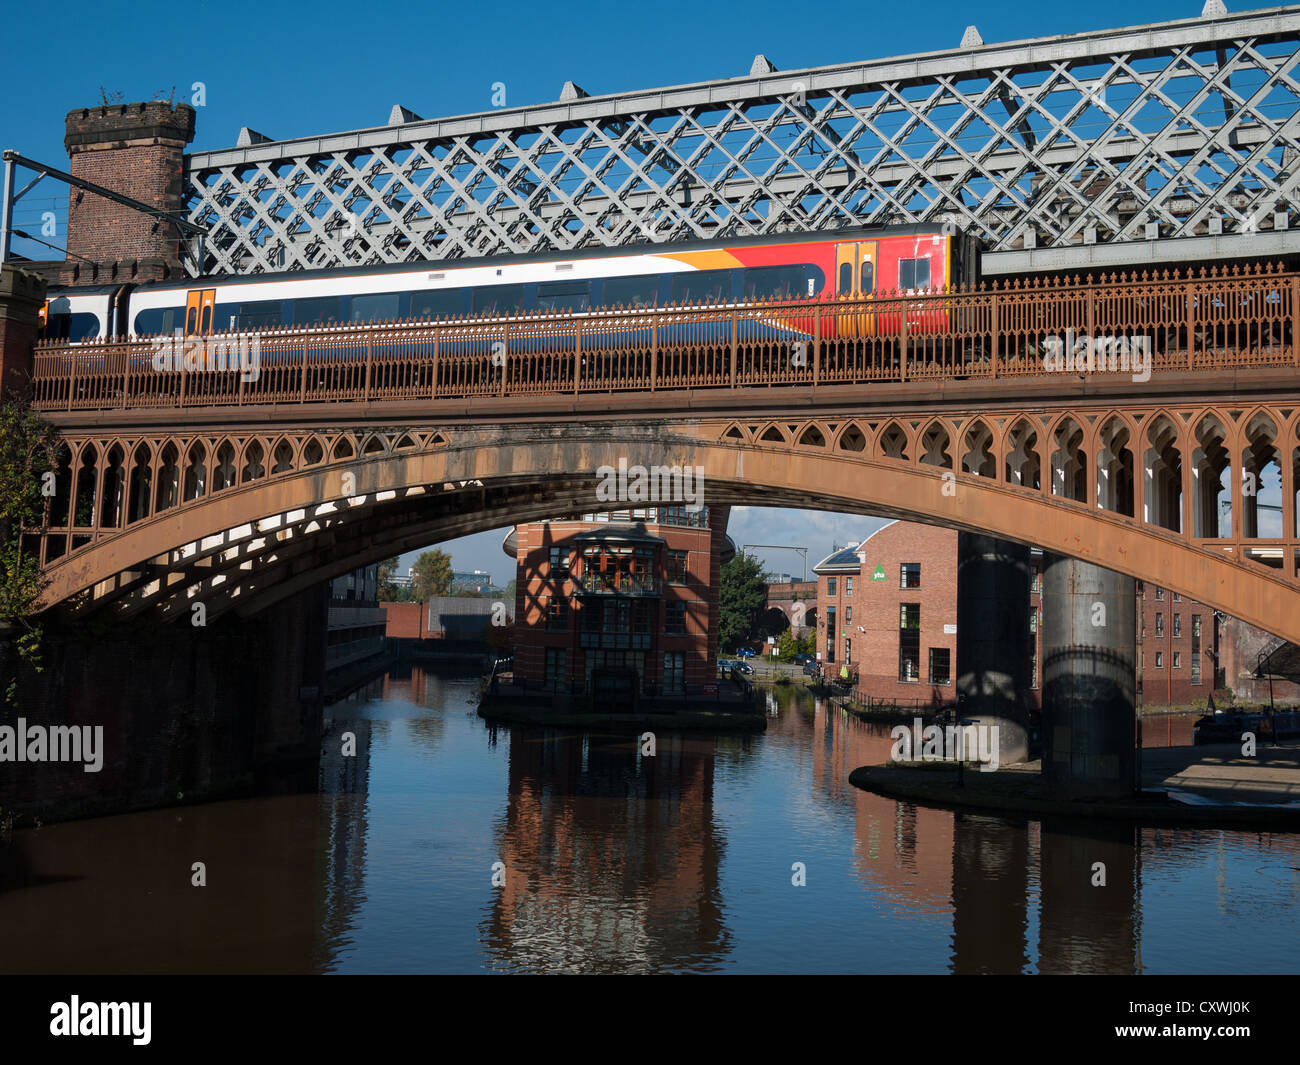 Train passing over bridge, Castlefield, Manchester - Stock Image